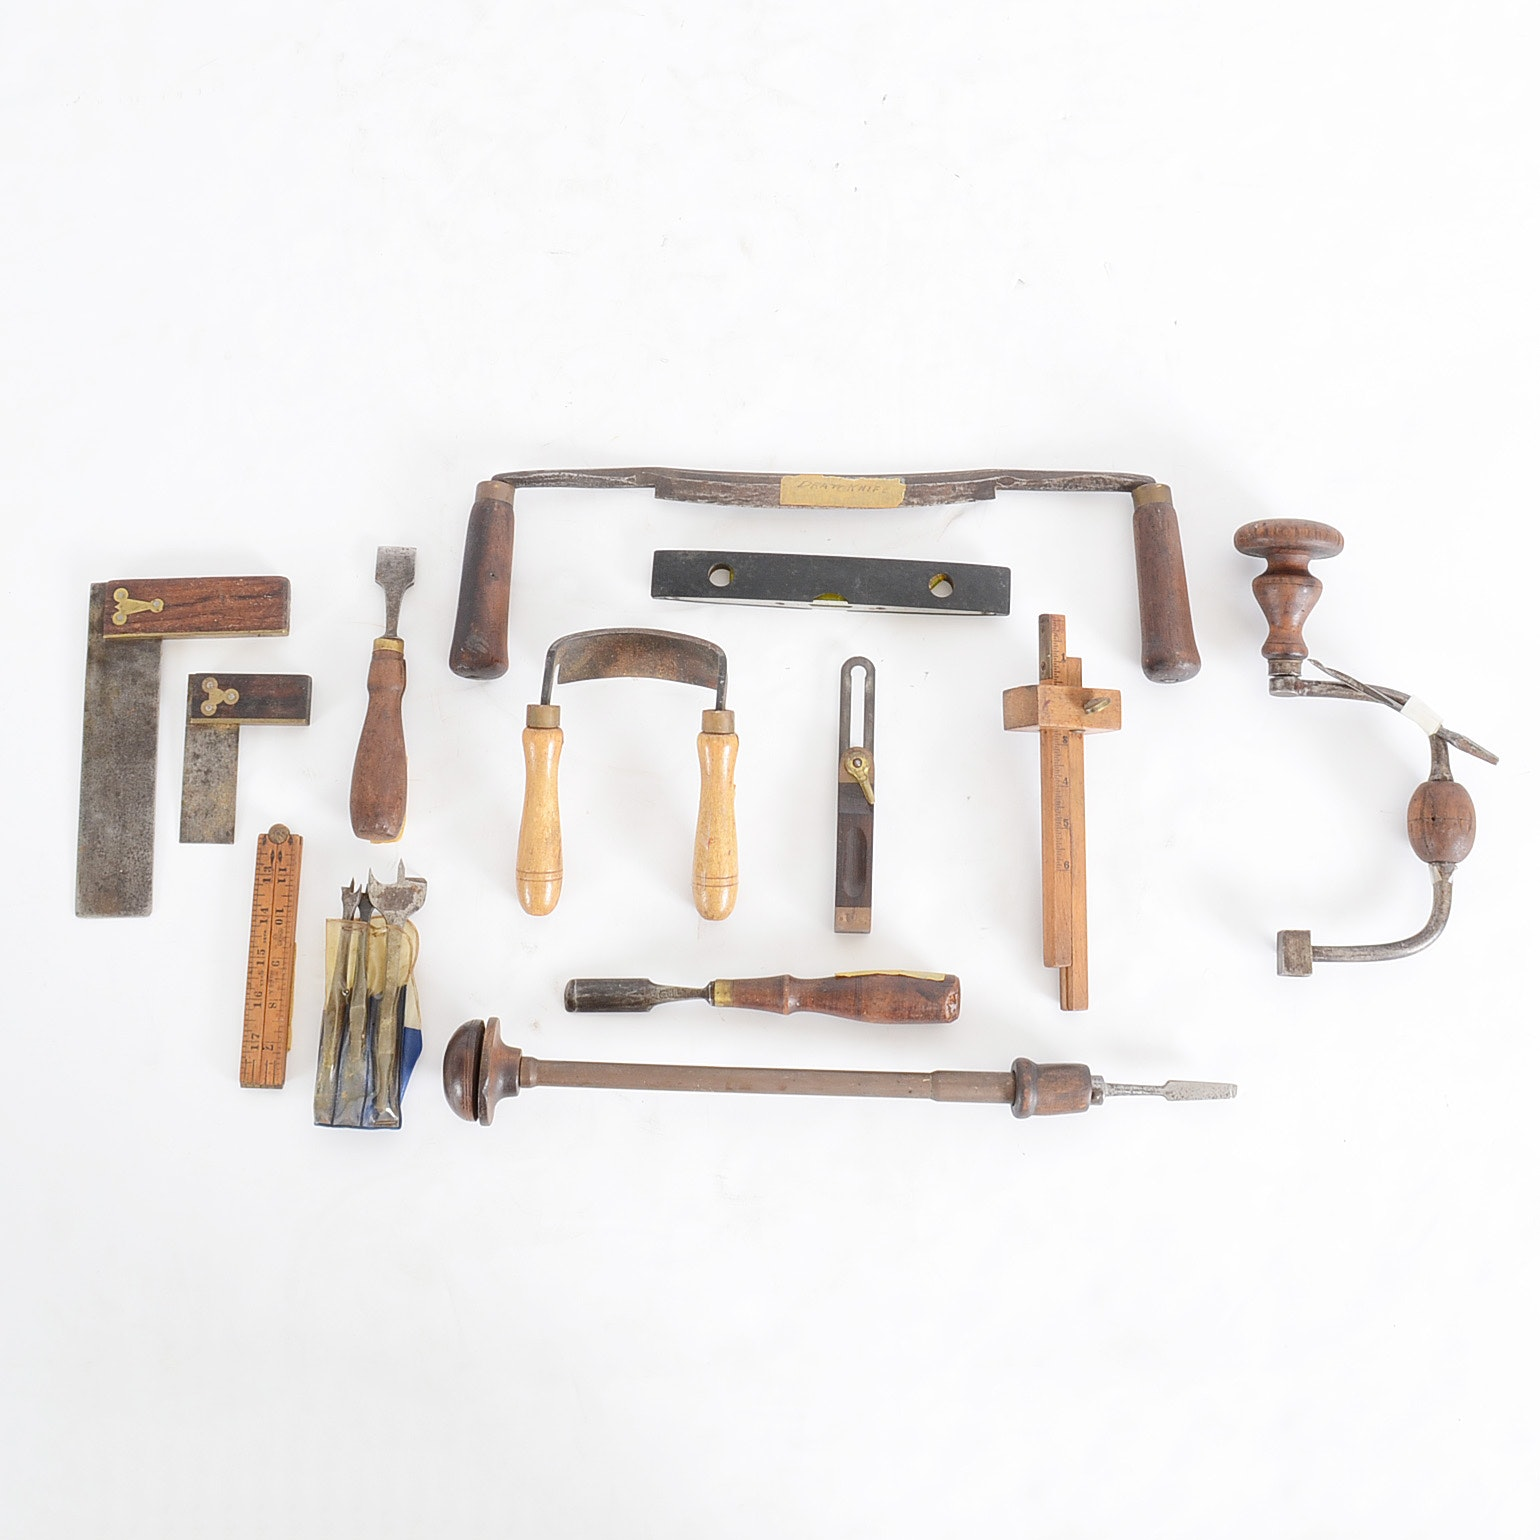 Collection of Antique Carpentry Tools